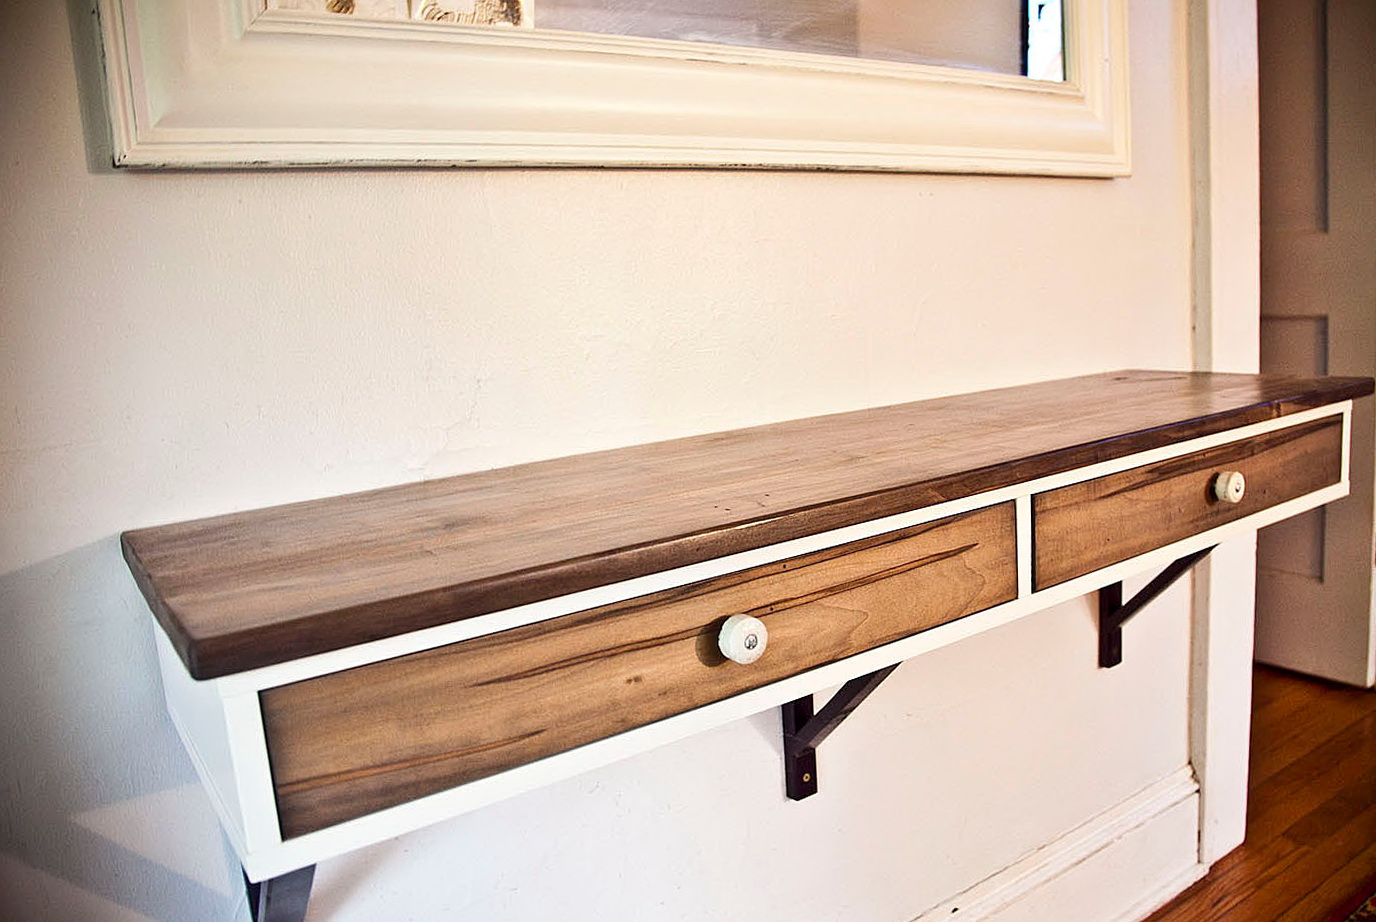 Ikea Wall Shelf With Drawers